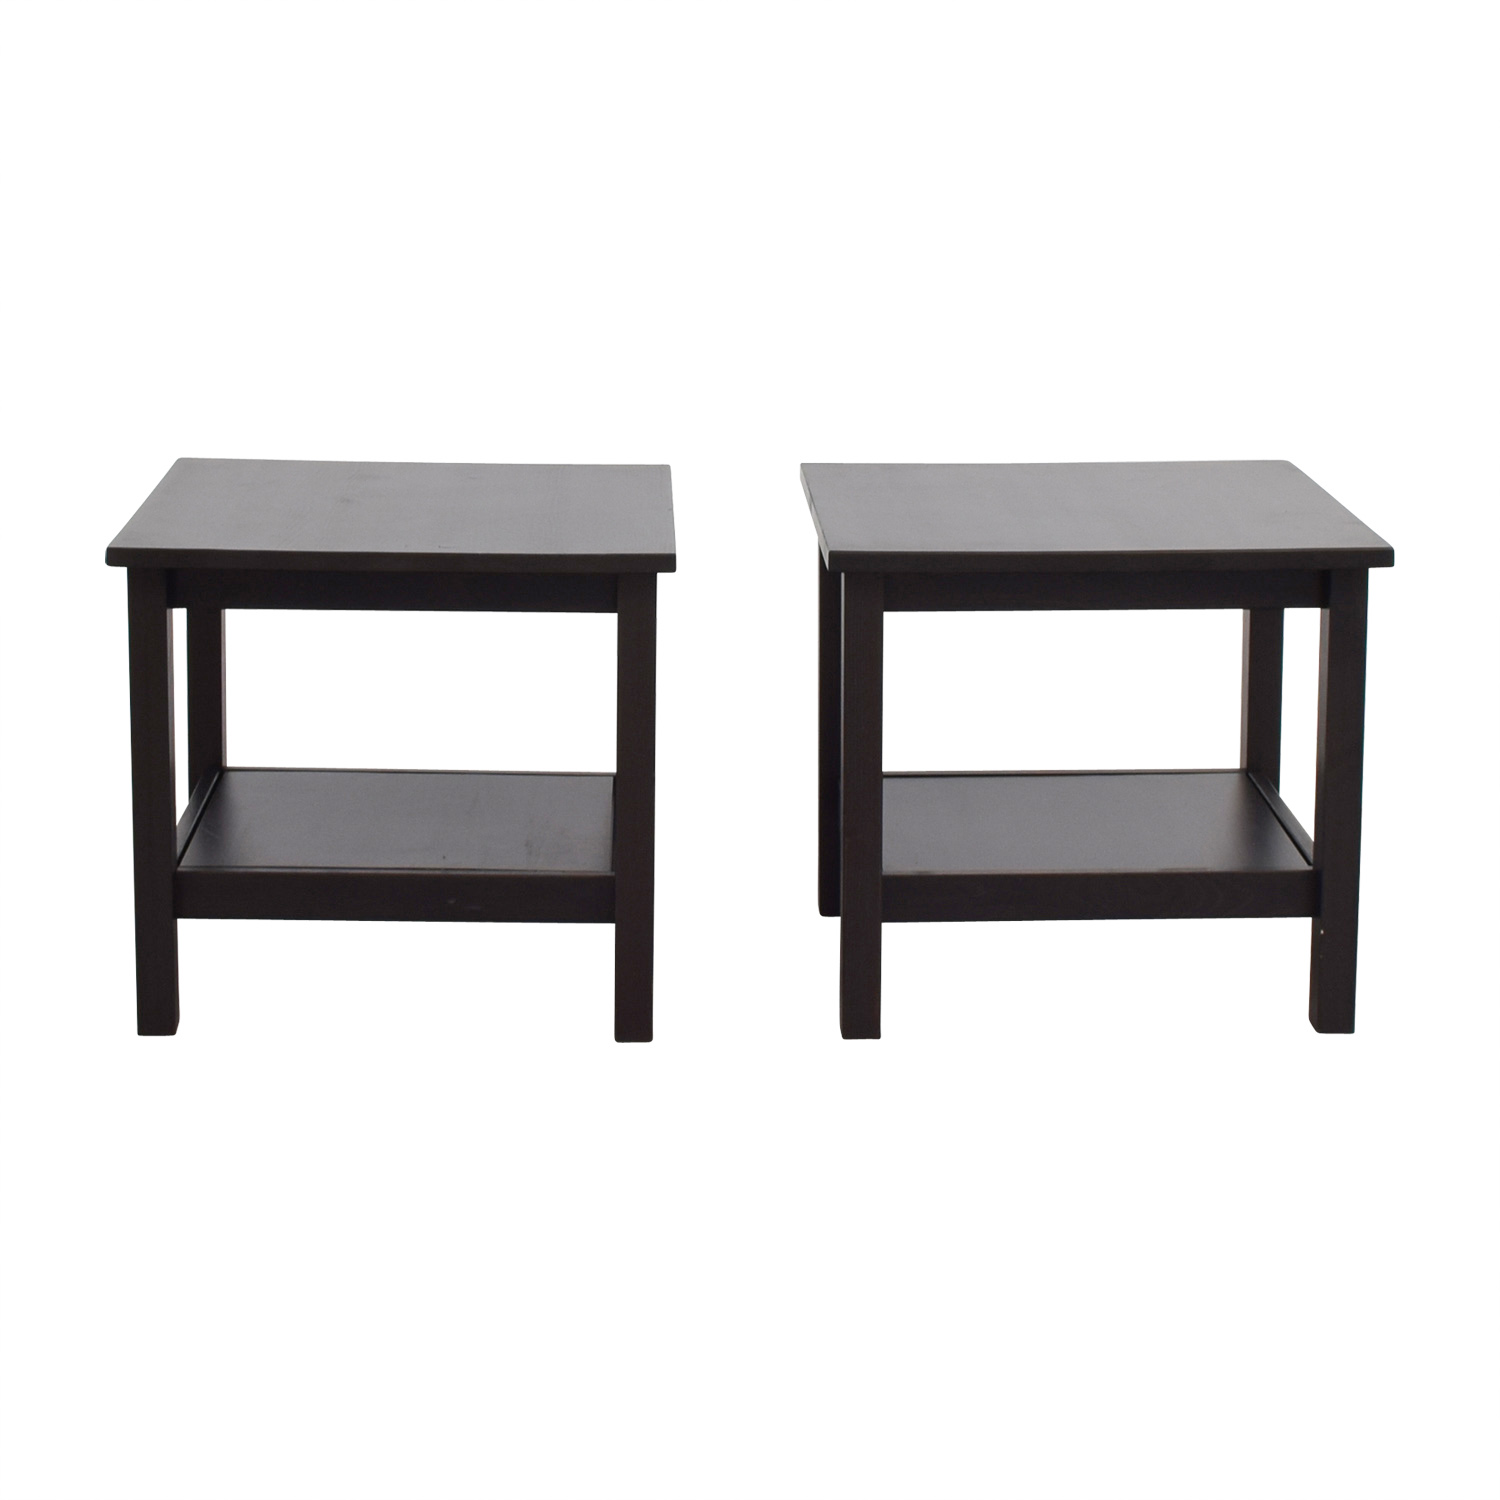 glass side stinless steel wood ideas marvellous ikea table metal simple end design tables round